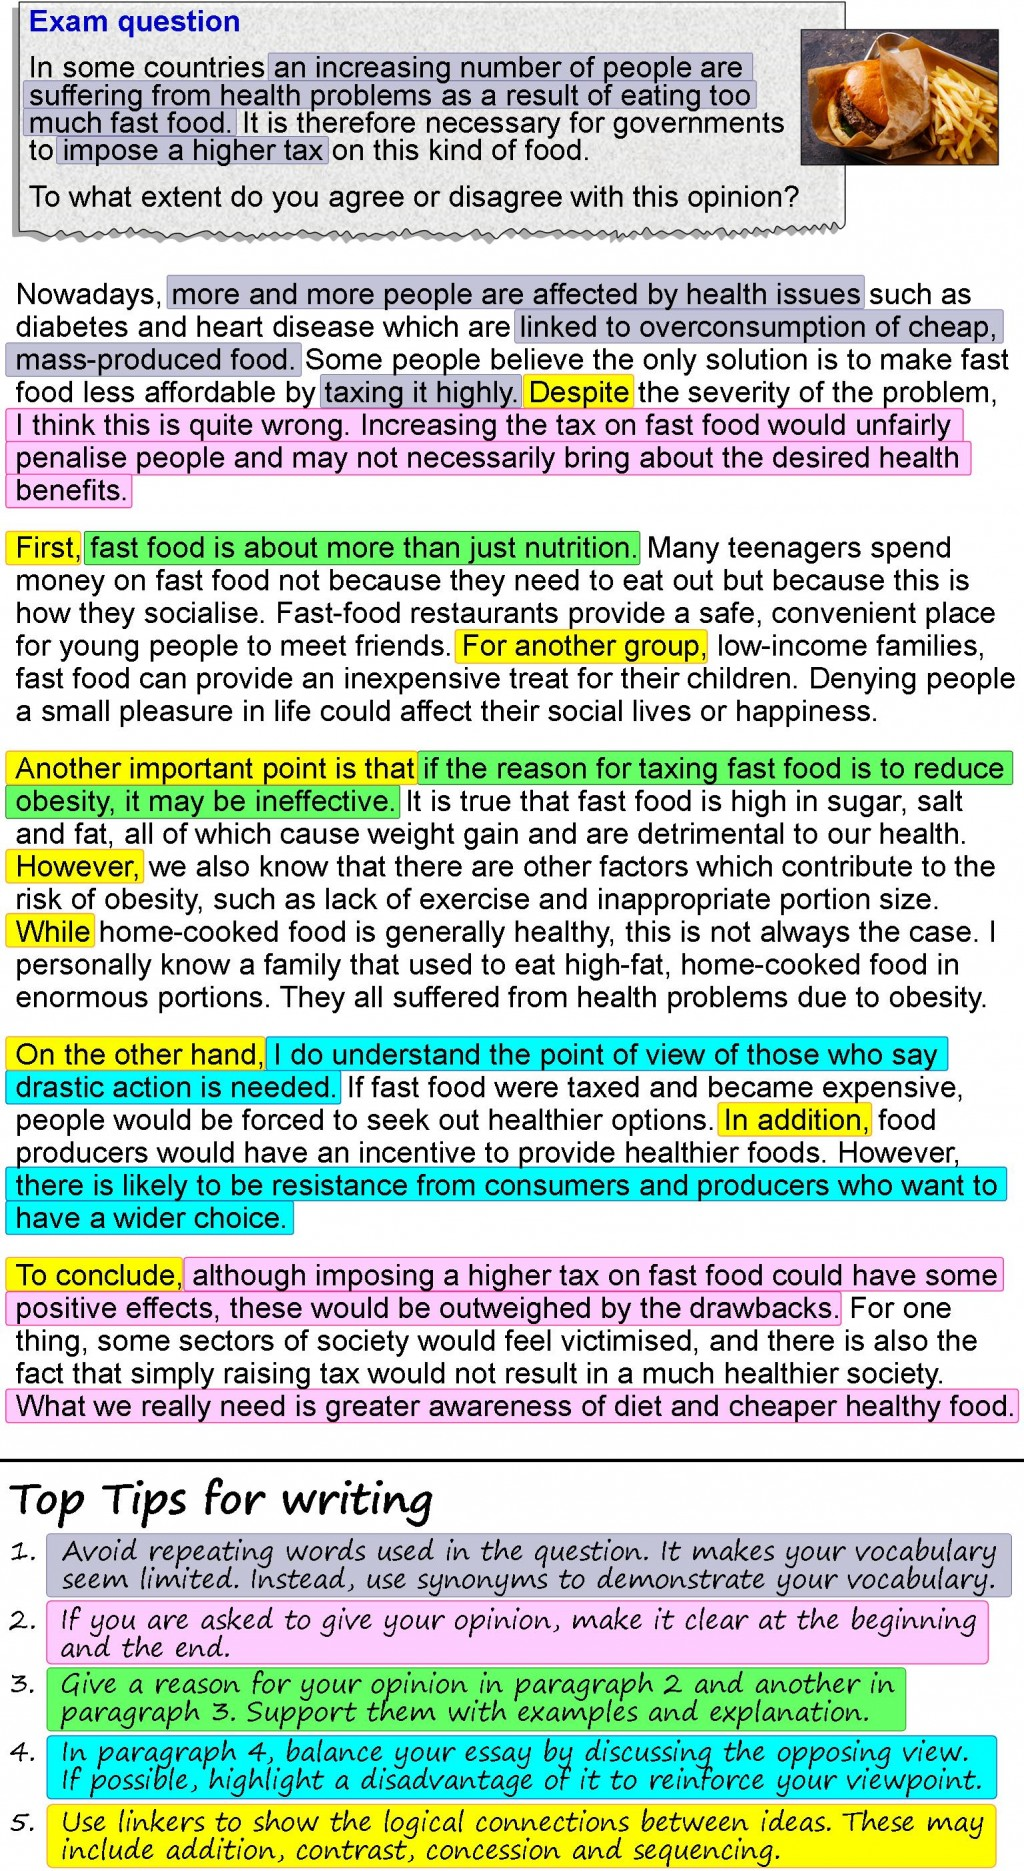 001 Opinion Essay About Fast Food Example An 4 Unbelievable Restaurants Is A Good Alternative To Cooking For Yourself British Council Large